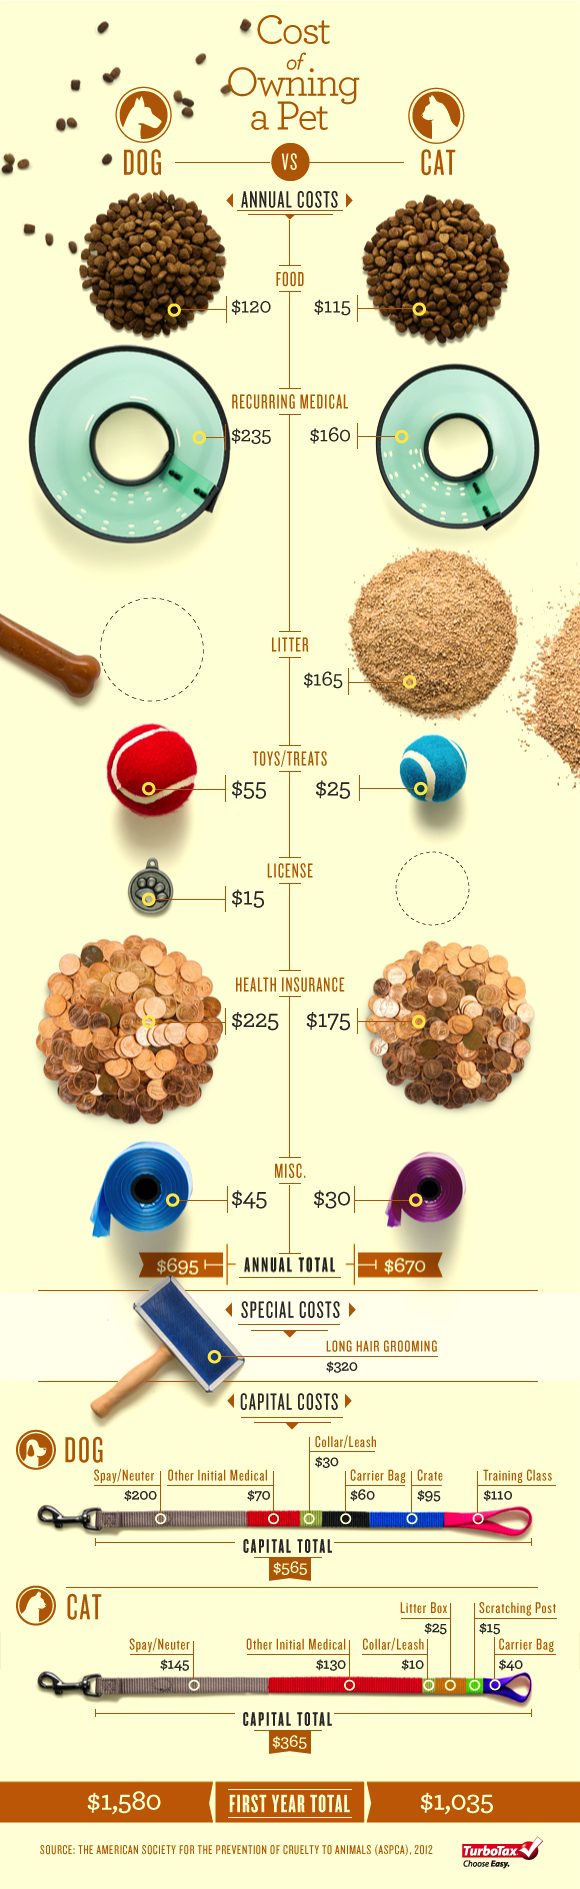 Cost of Dogs and Cats-Infographic